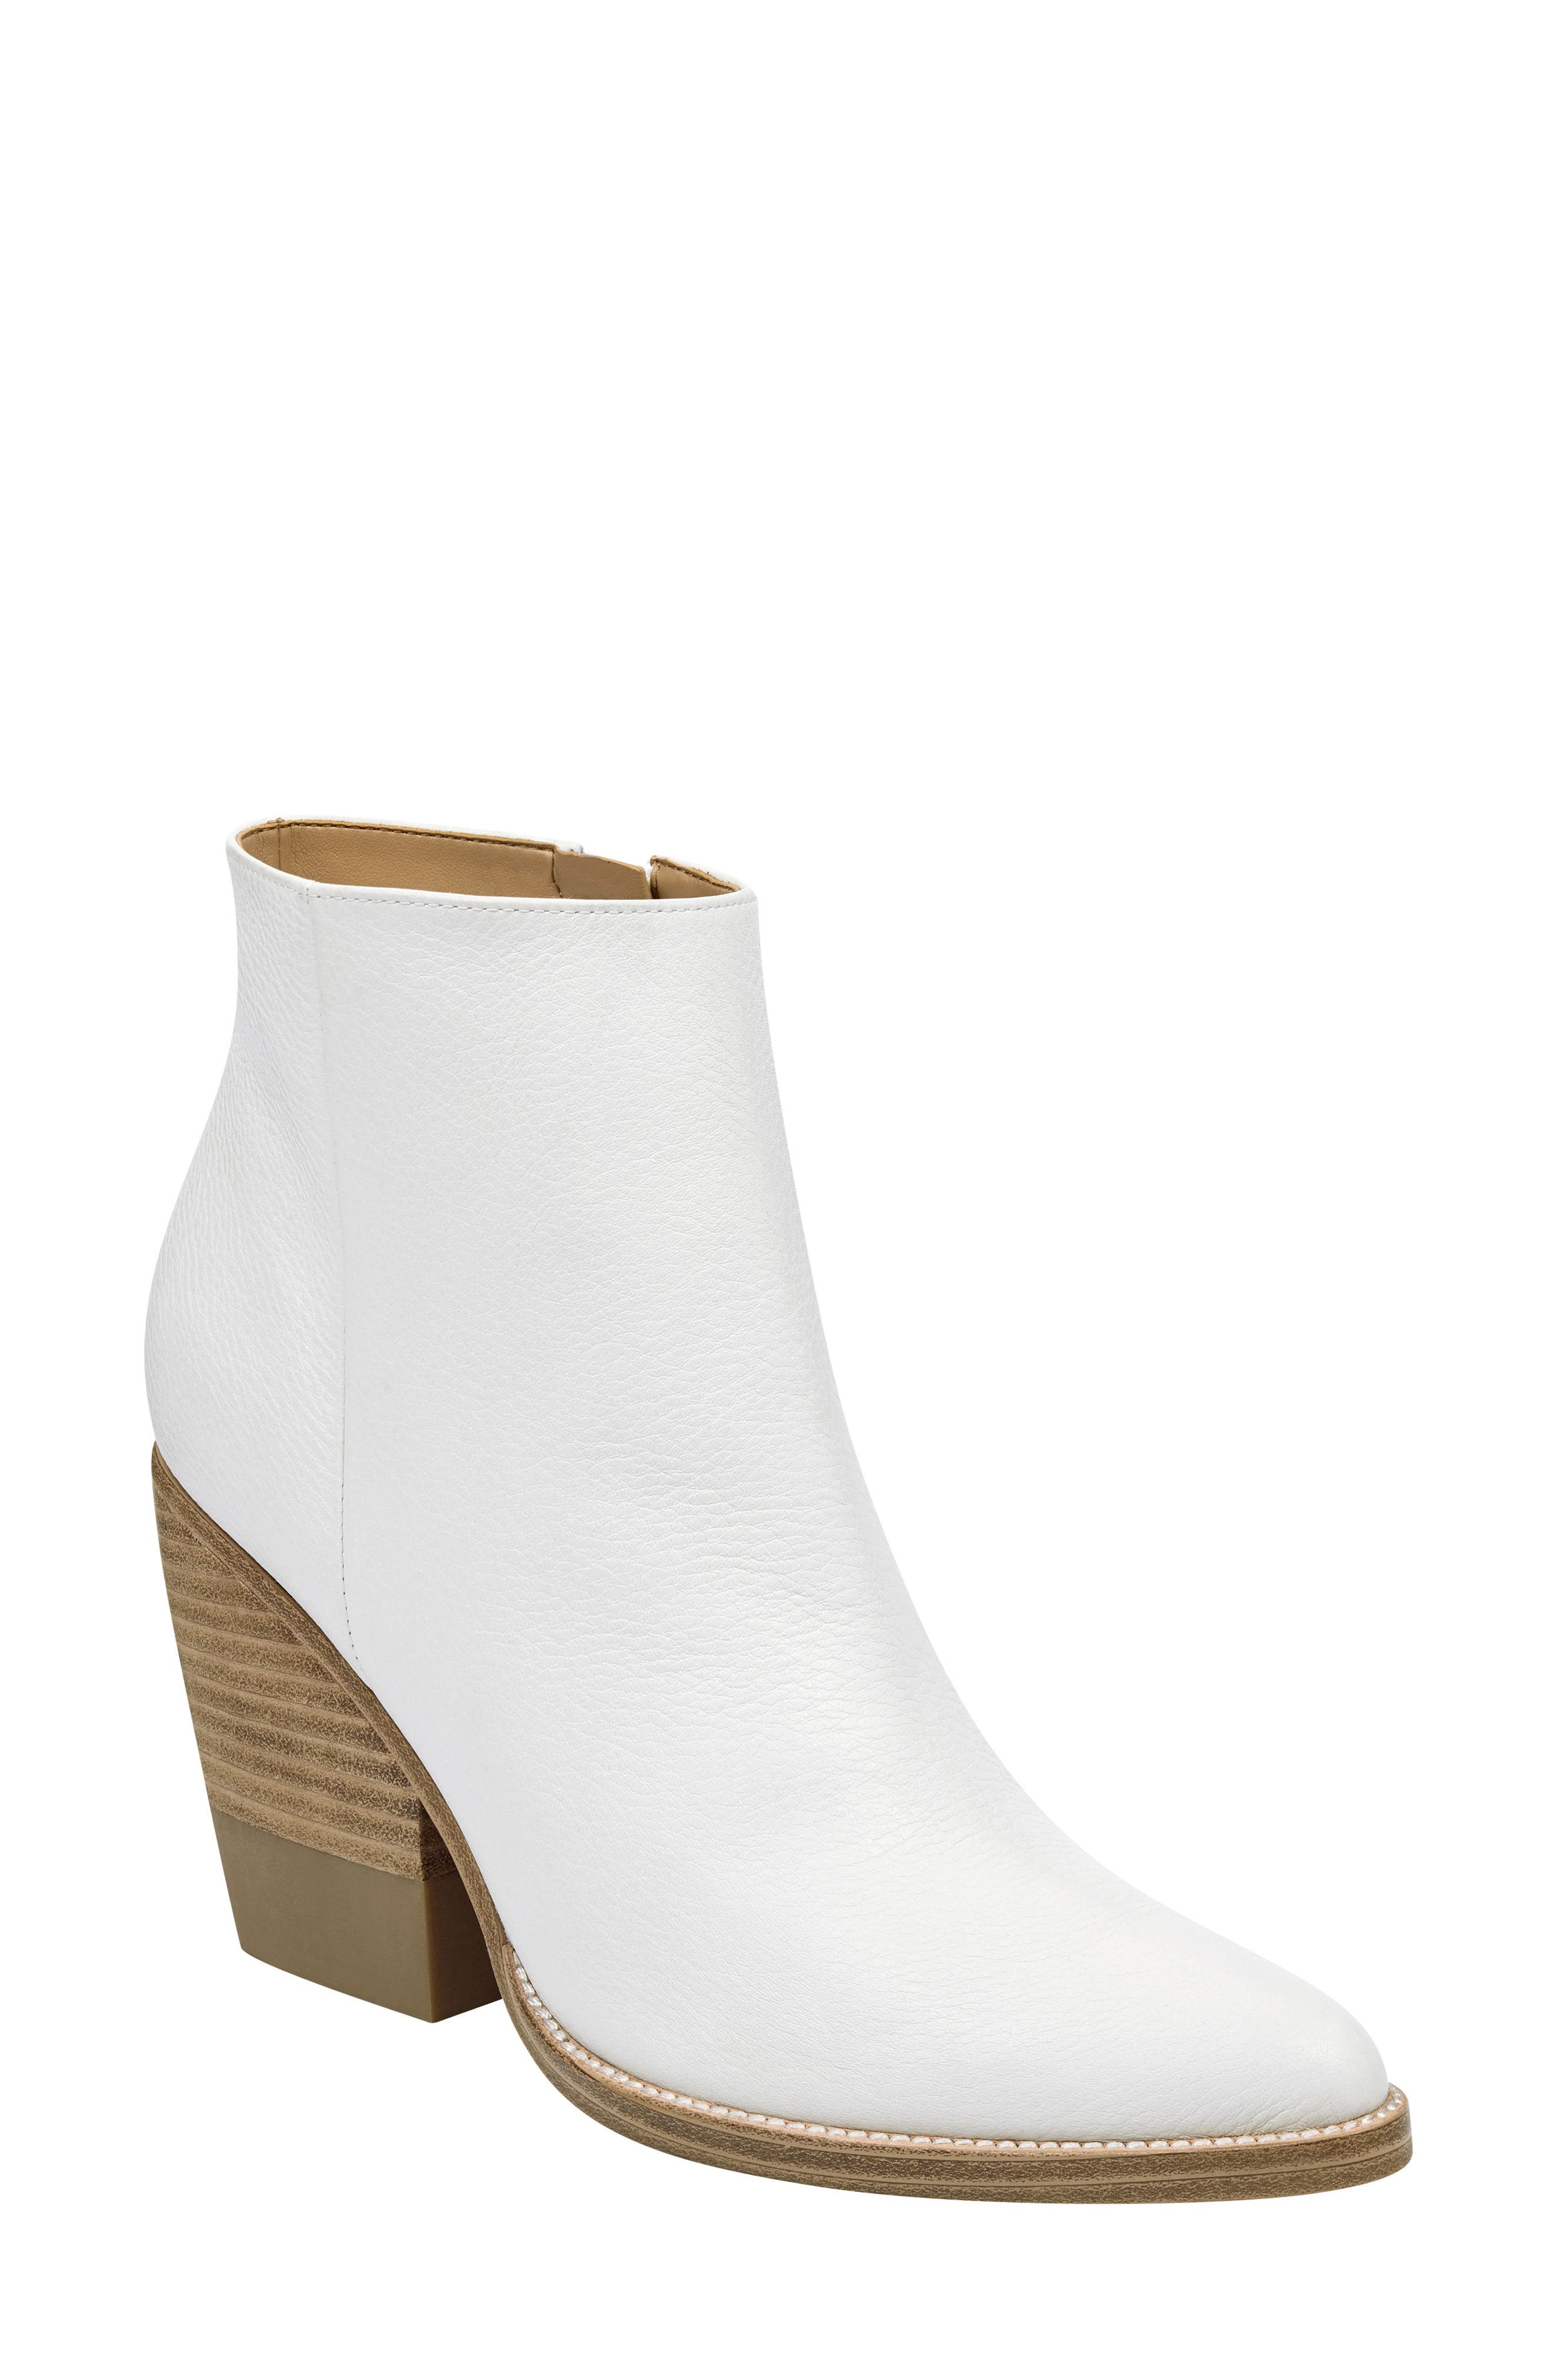 Bellen Bootie by Marc Fisher Ltd